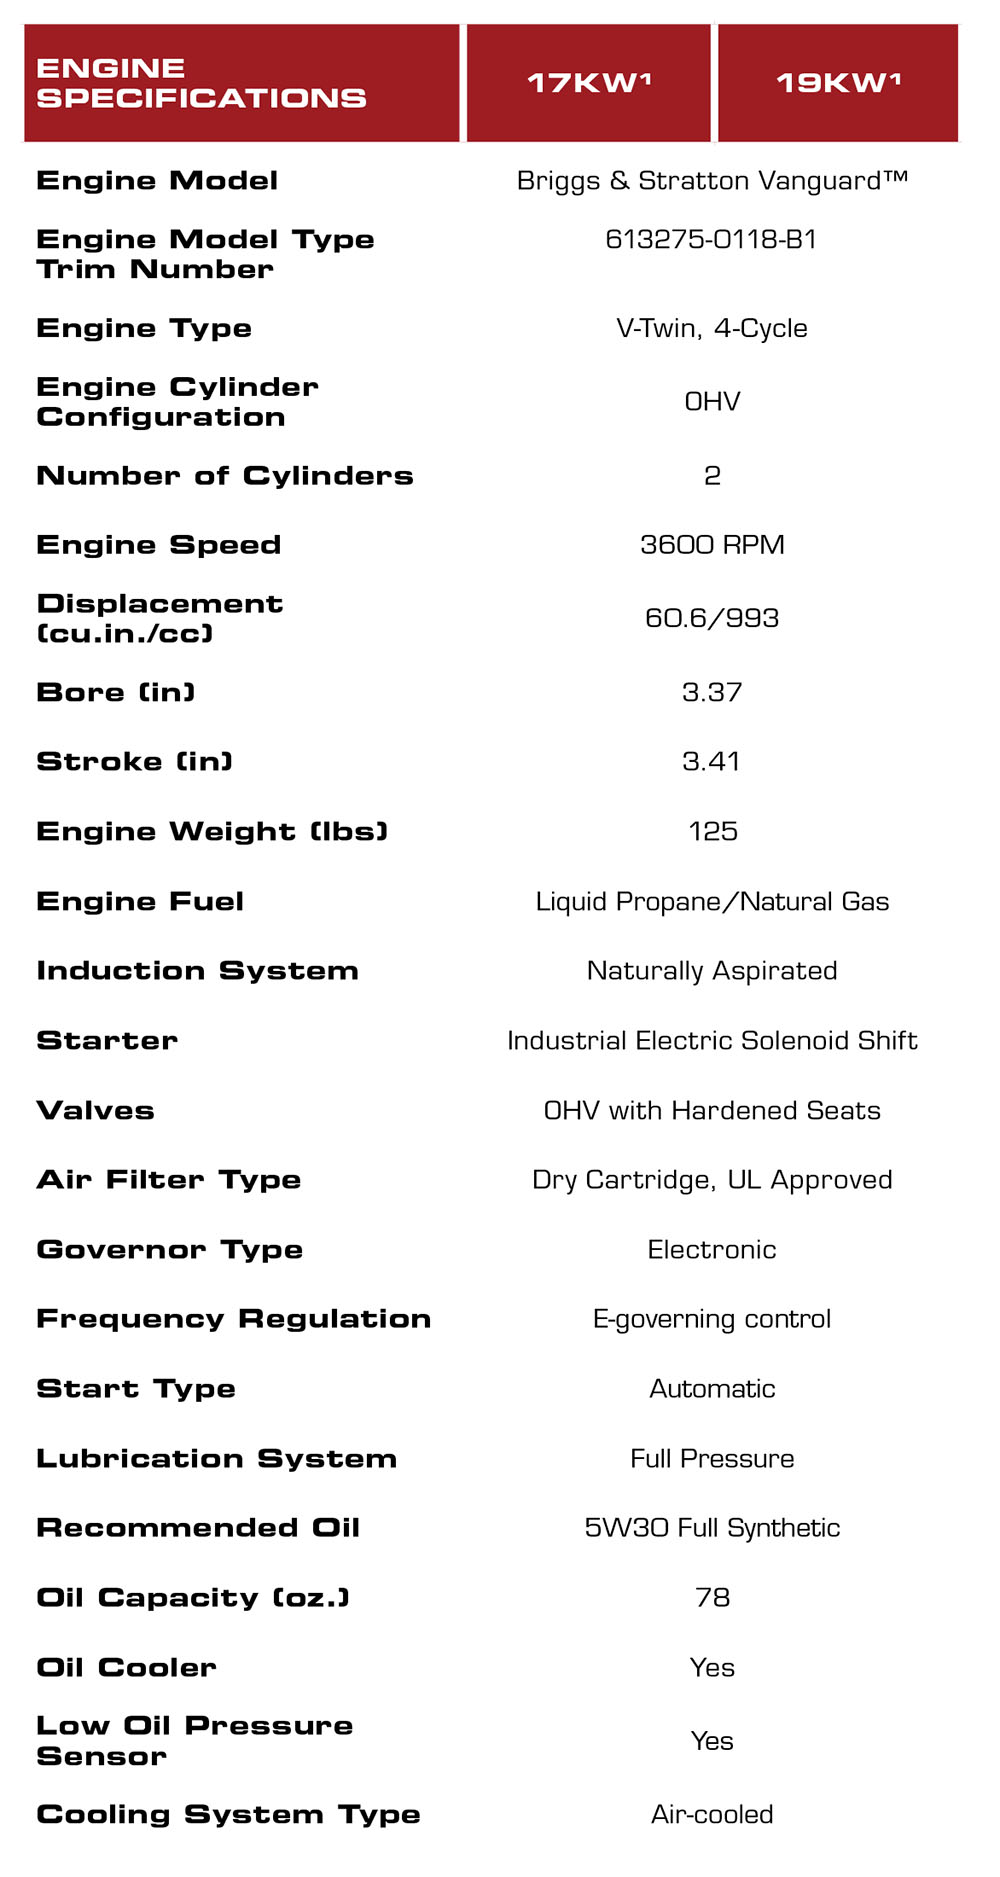 Briggs & Stratton Three Phase_17-19kw Engine Specs